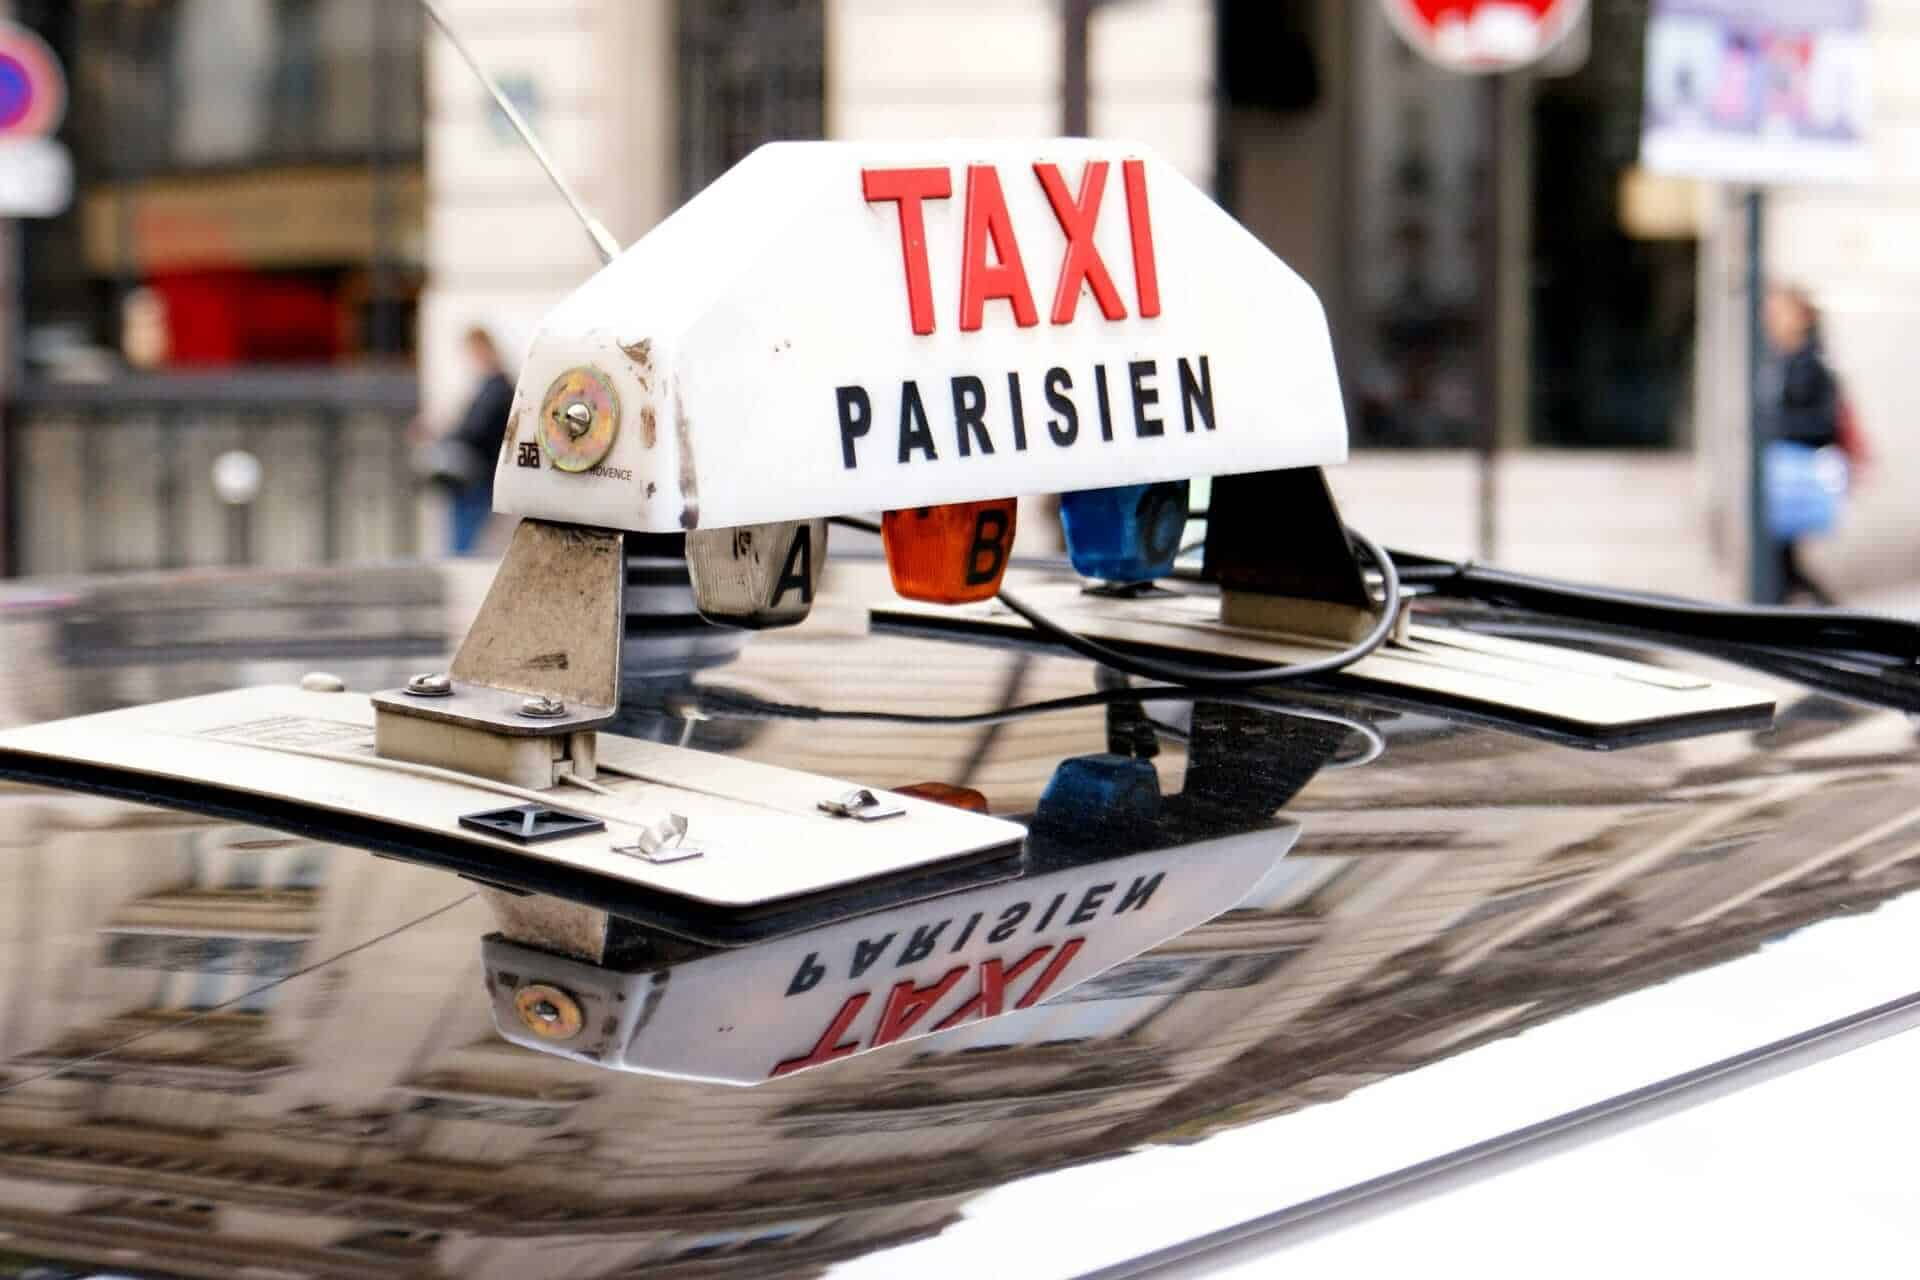 Taxis, Paris